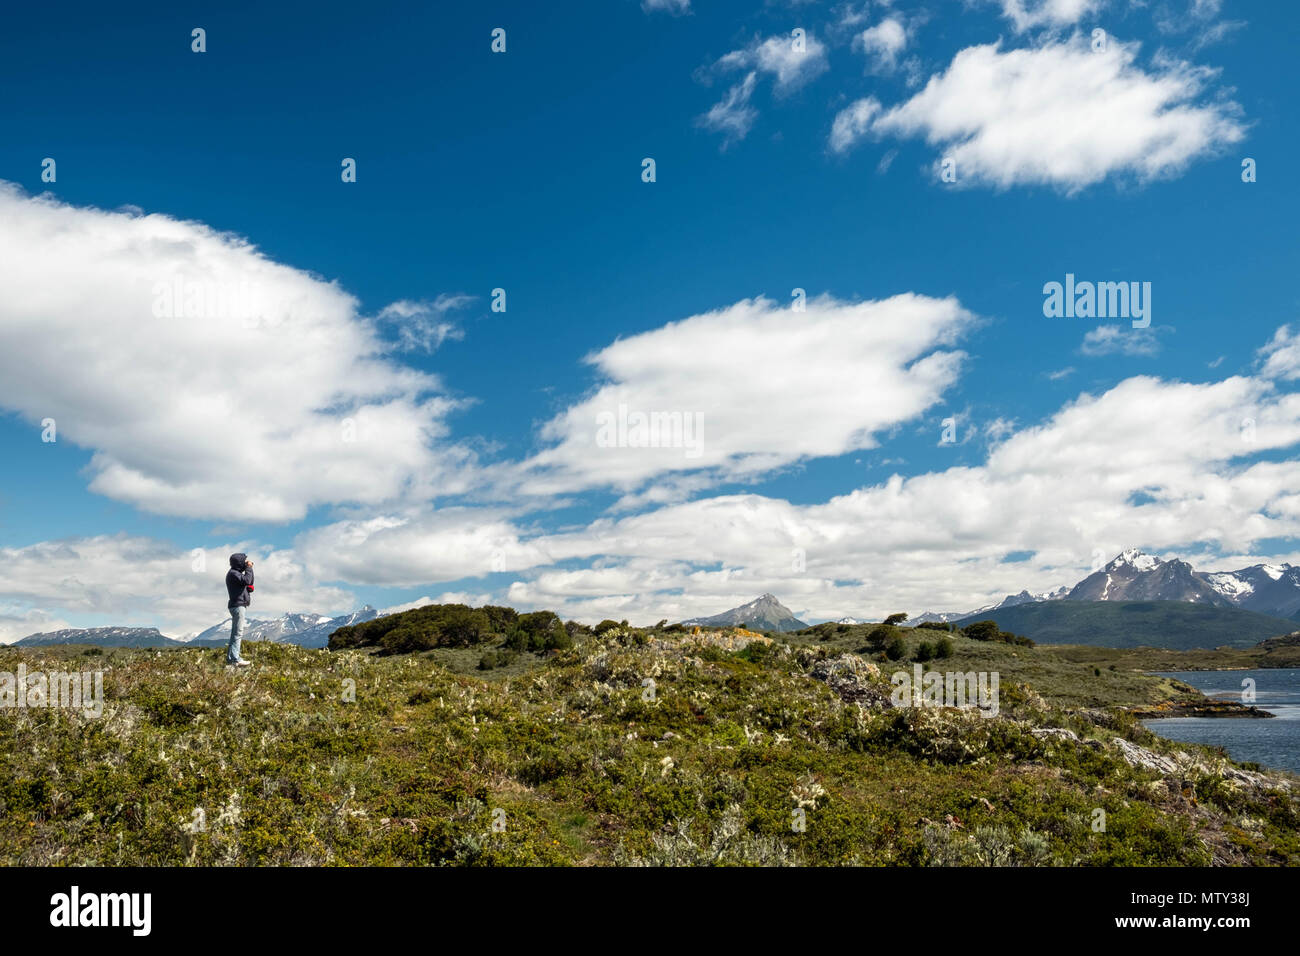 A tourist in Puerto Navarino enjoys the landscape of Isla Navarino, the Beagle Channel and its surroundings. This part of Chile is rather wild. - Stock Image